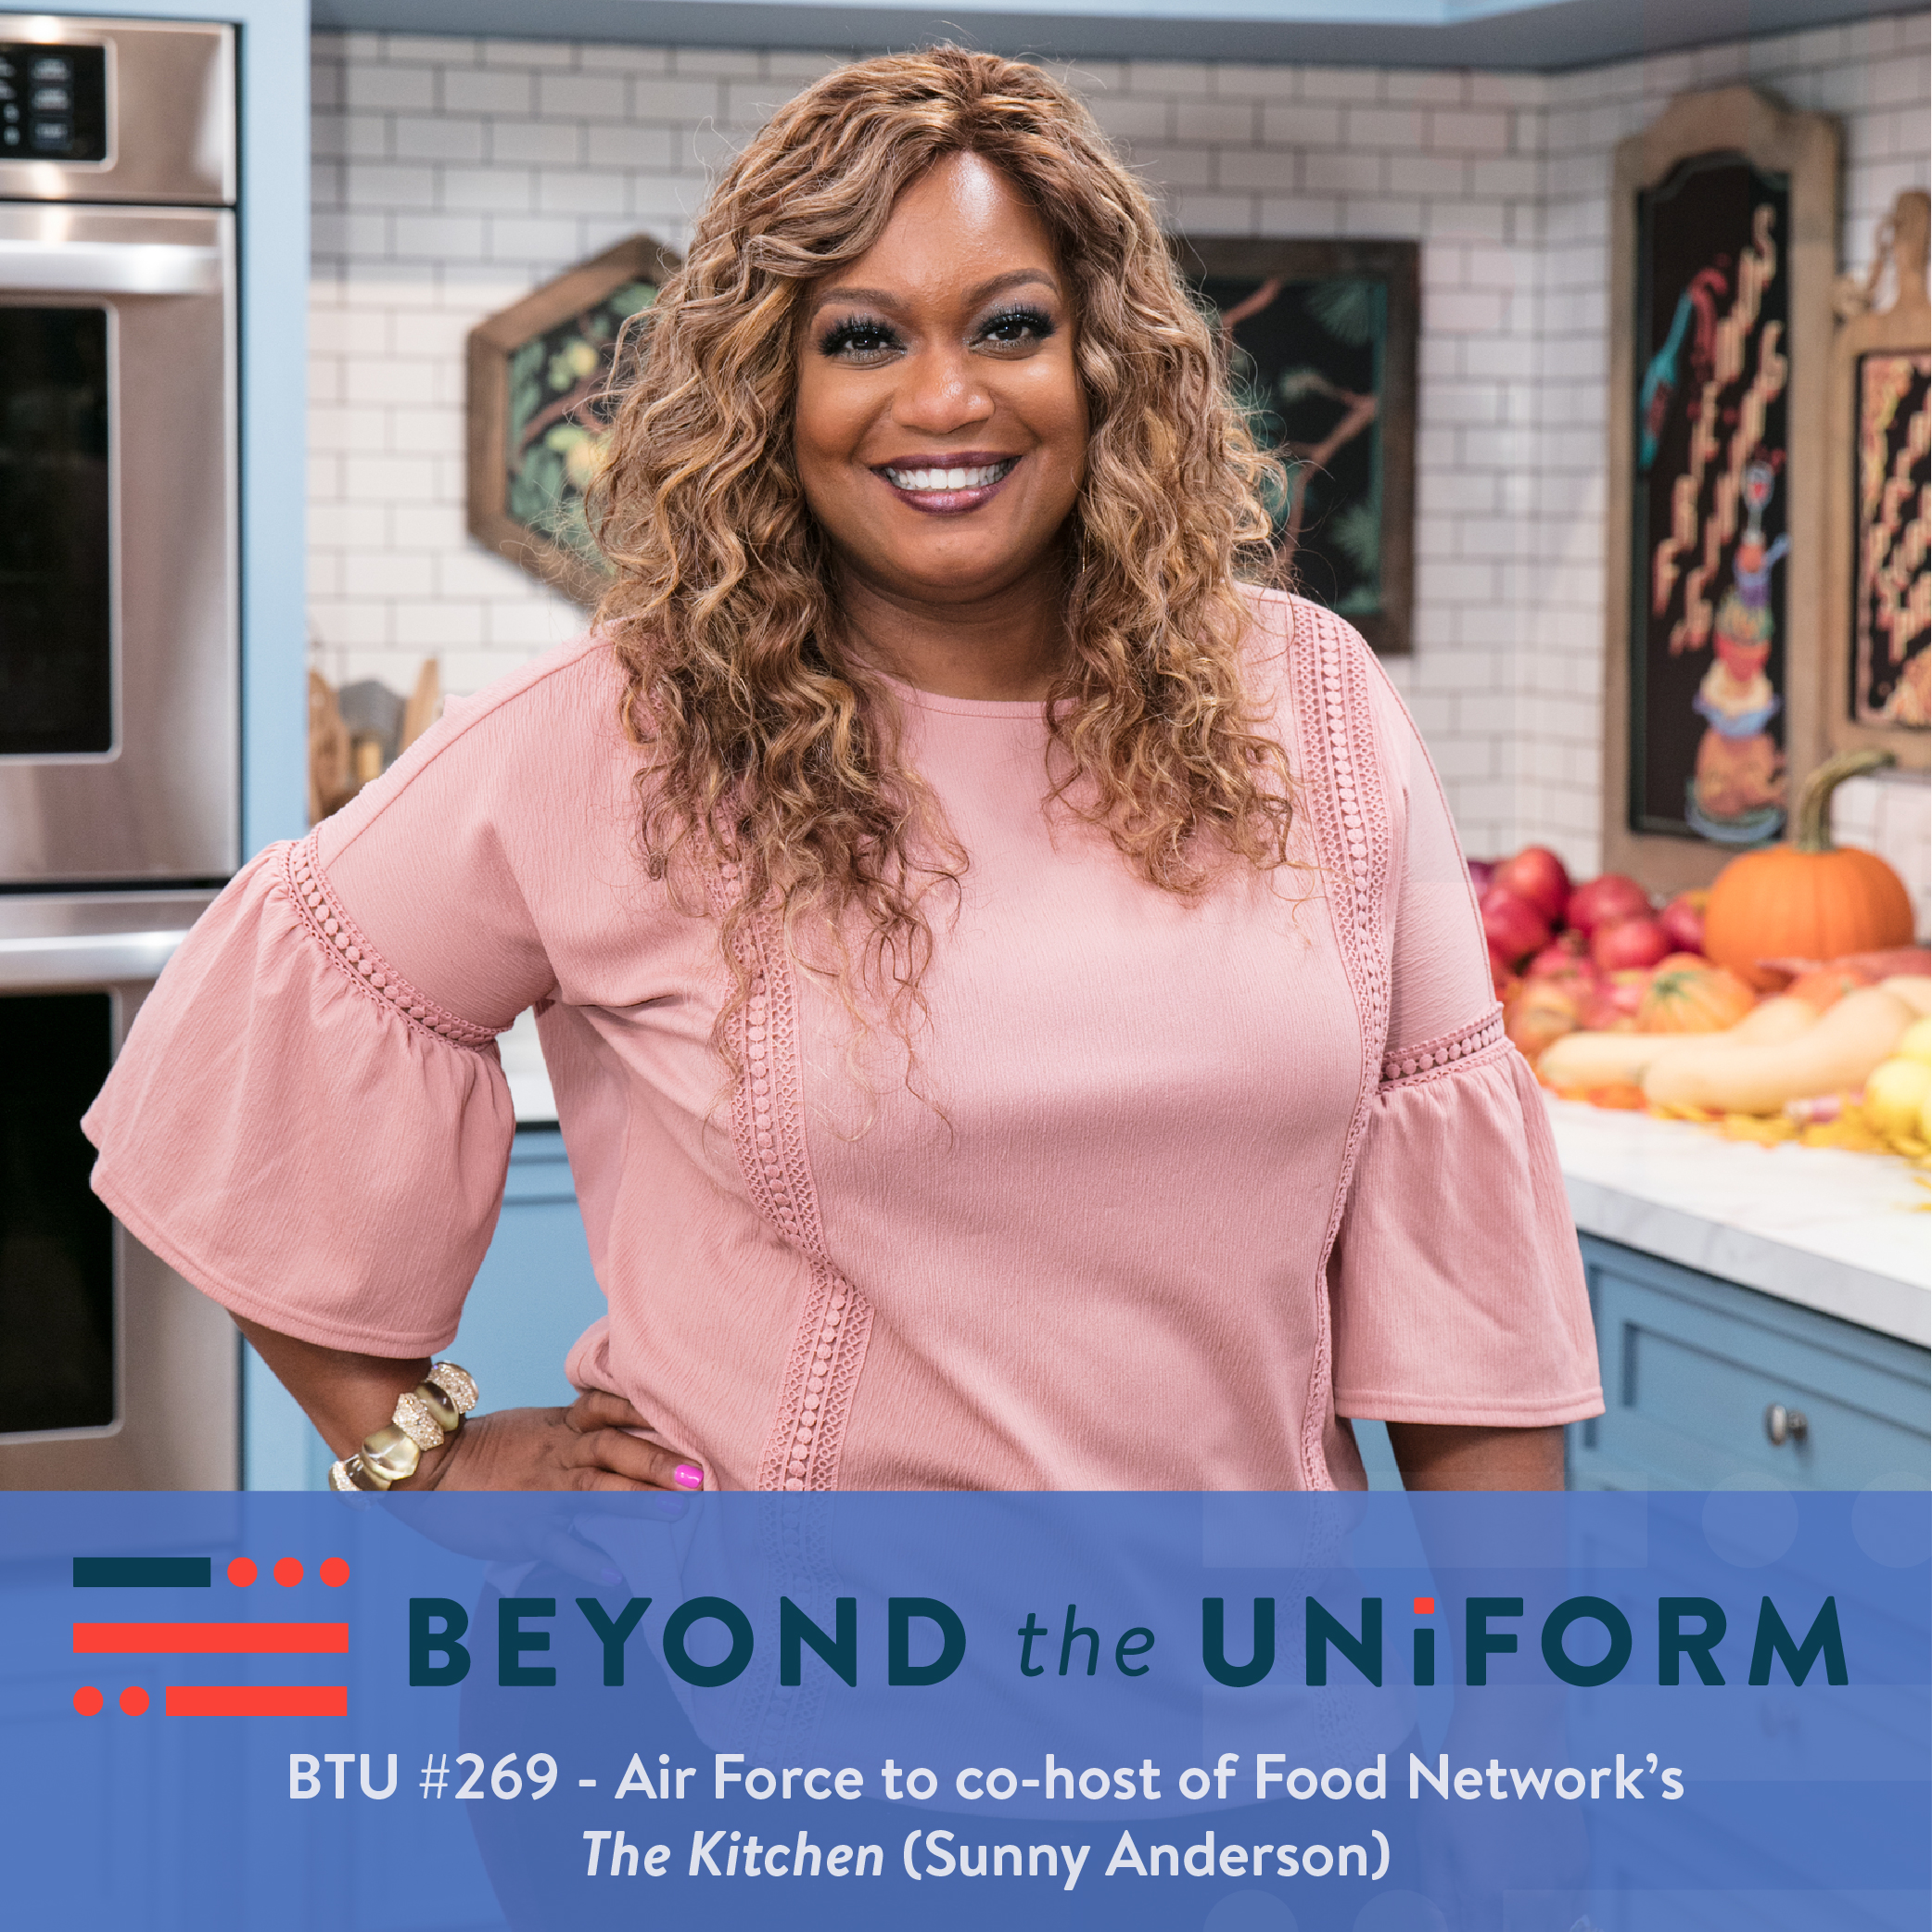 Btu 269 Air Force To Co Host Of Food Network S The